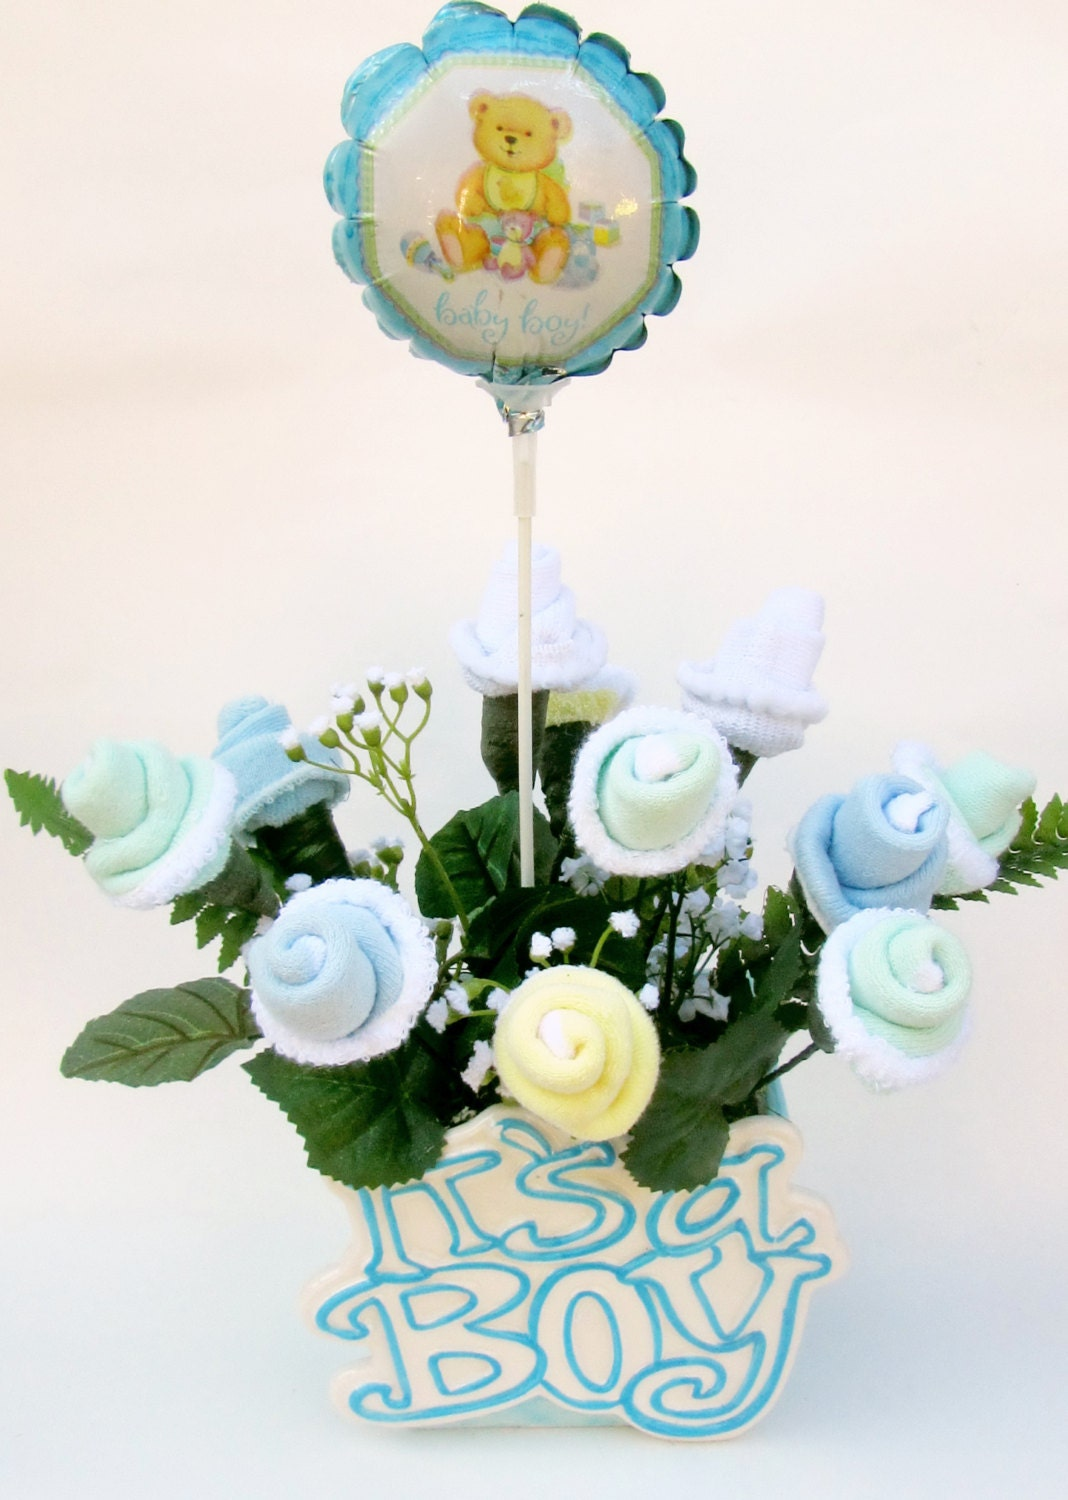 It 39 s a boy baby shower centerpiece baby boy by violetcreationz - Baby shower ideas for a boy centerpieces ...